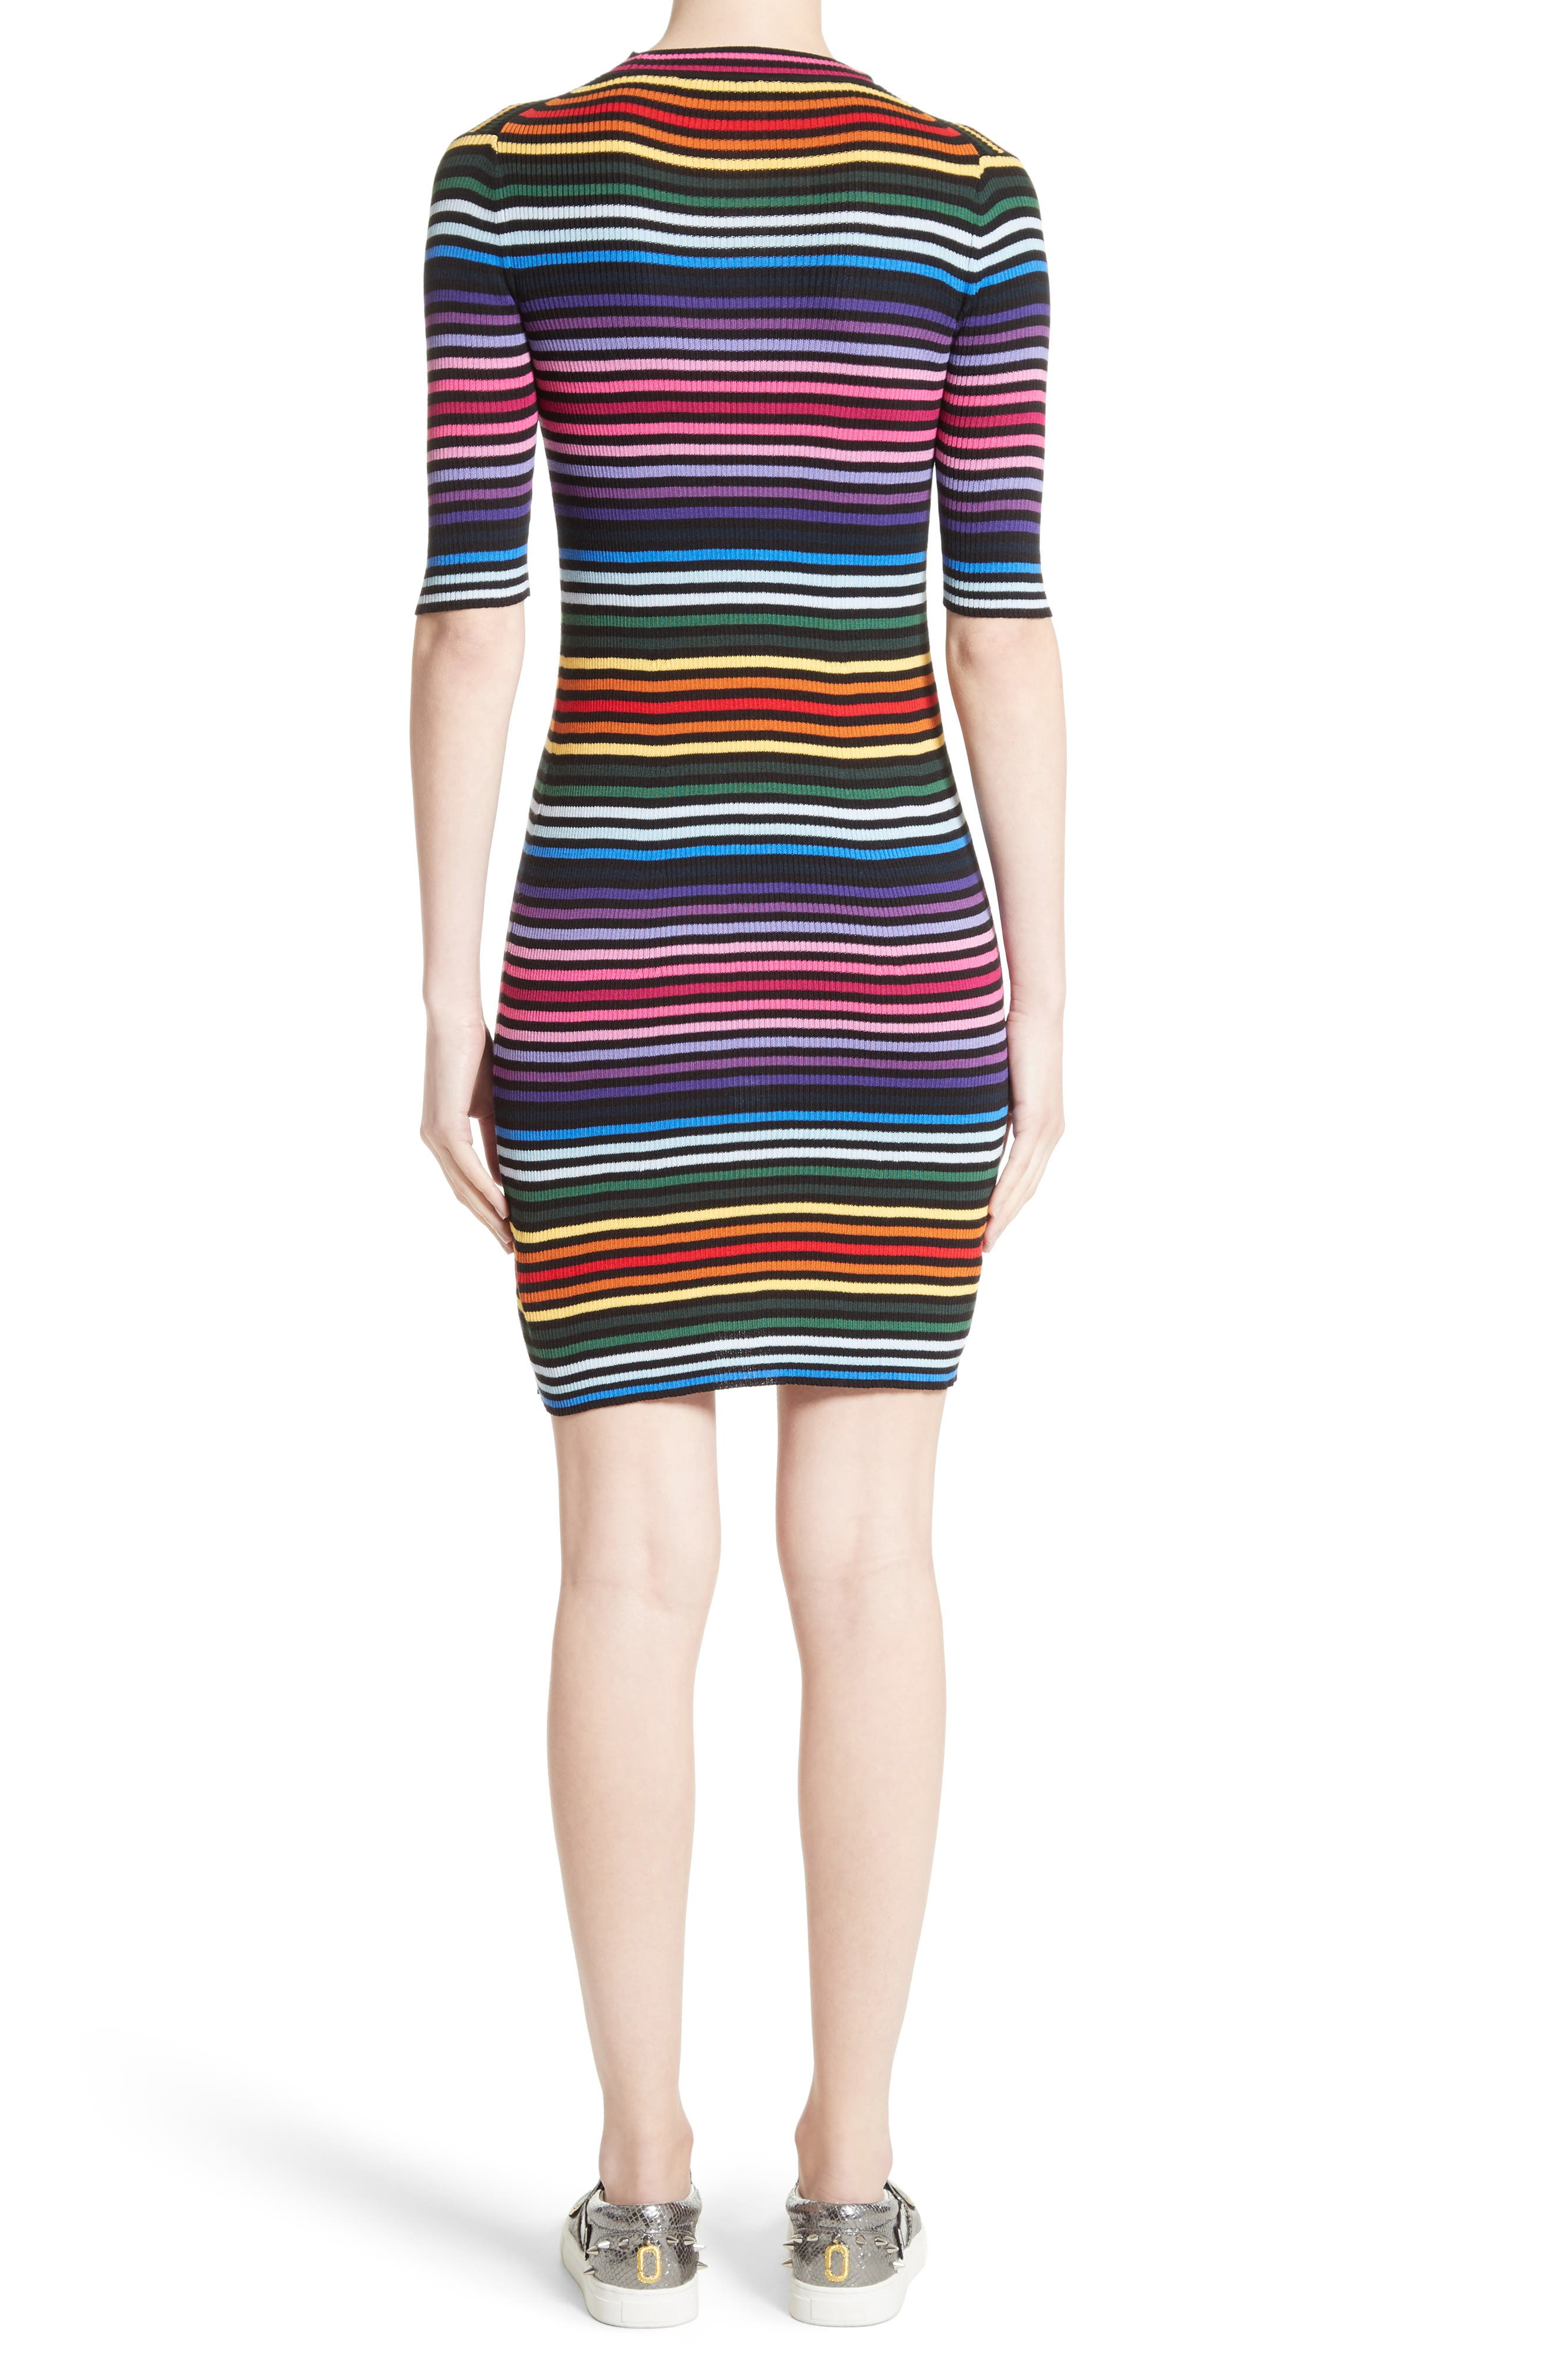 Alternate Image 2  - MARC JACOBS Stripe Cotton T-shirt Dress